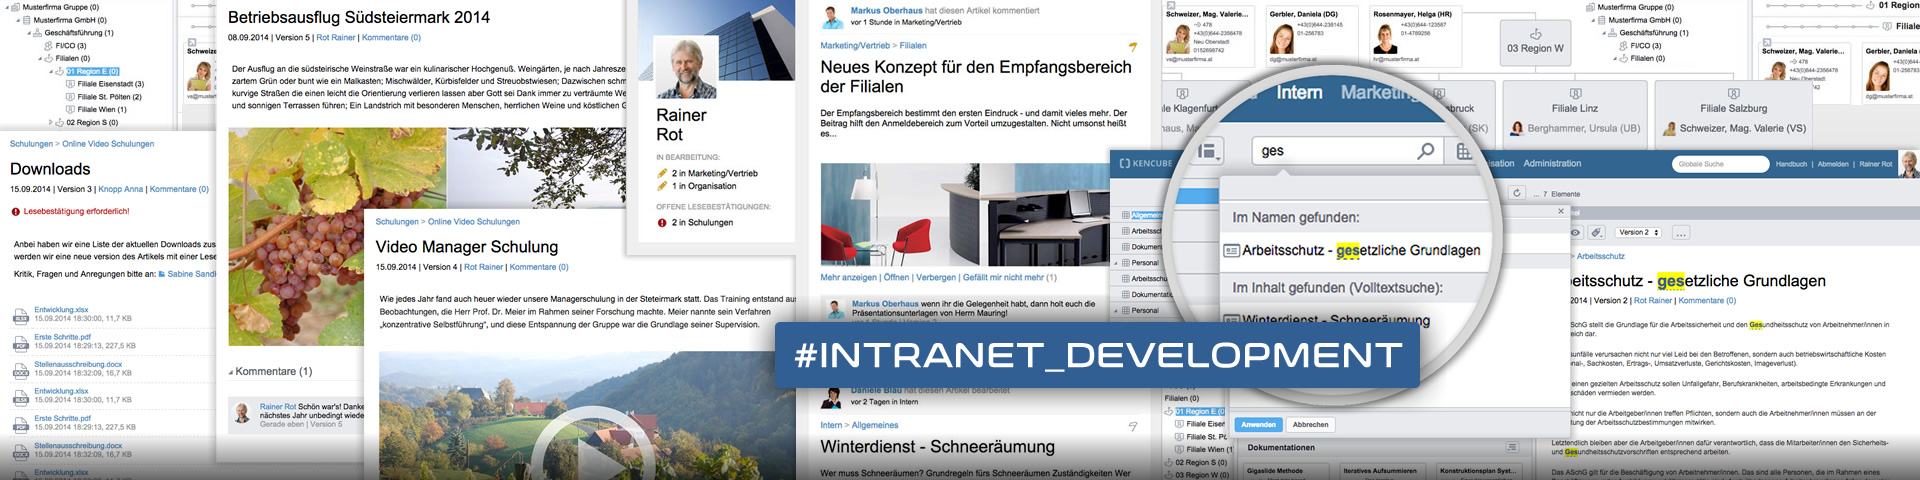 #Intranet_Development